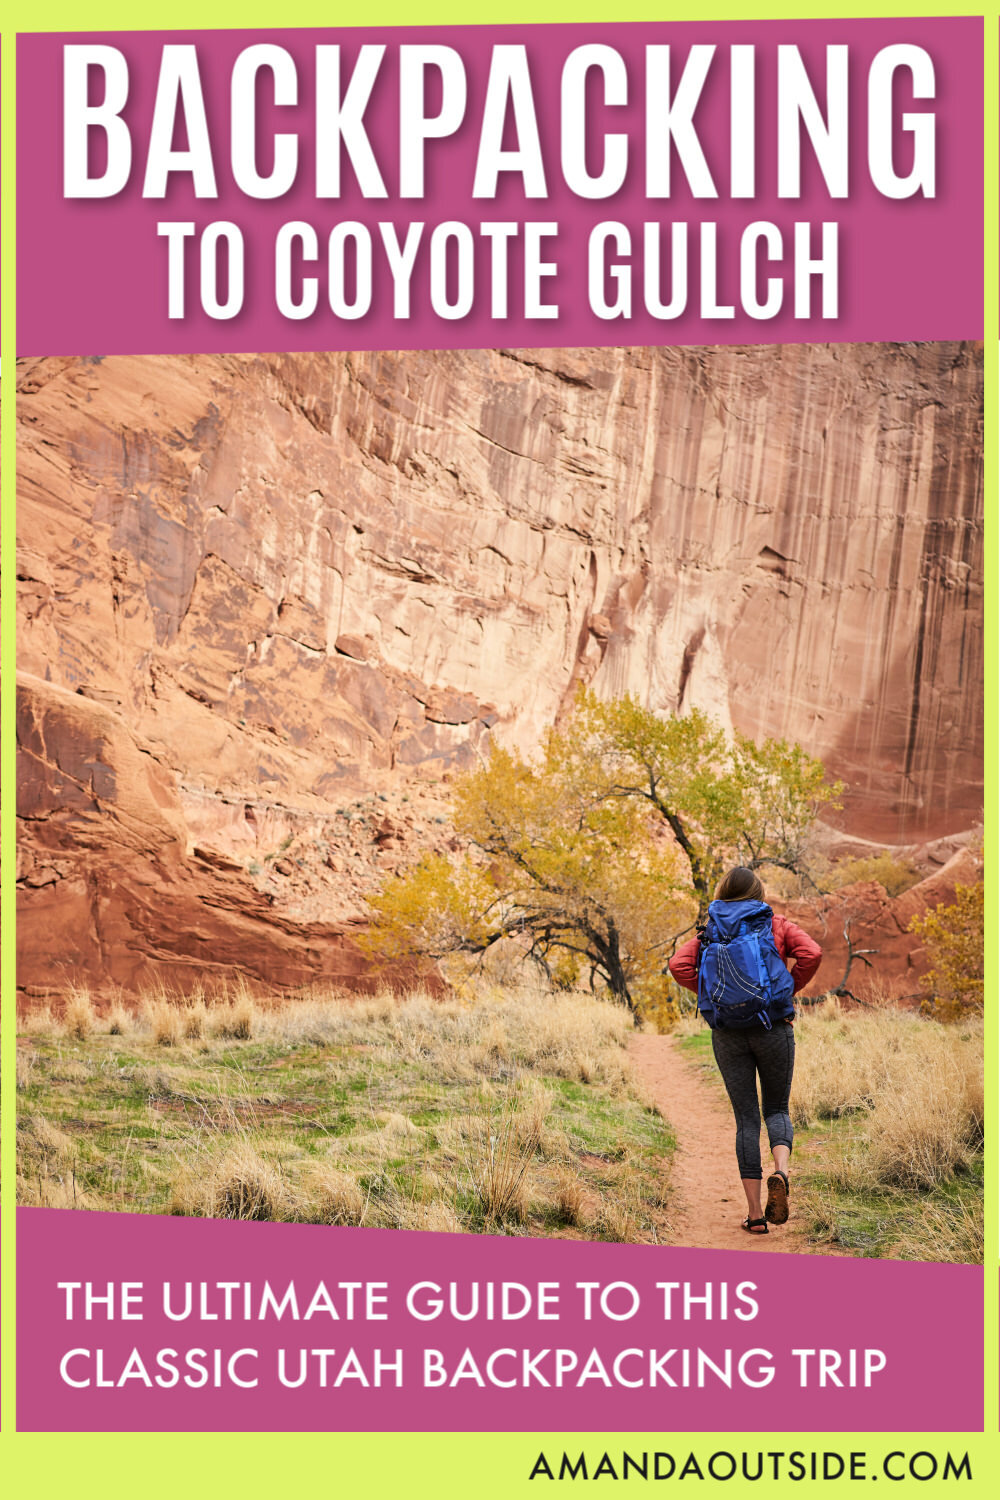 Backpacking to Coyote Gulch is a CLASSIC Utah backpacking trip! Click through for the ultimate guide to planning your backpacking trip. This guide includes the best time of year to go, how to get a permit, water availability, and so much more! By Amanda Outside - a Utah-based blogger with tips and inspiration for your next adventure! www.amandaoutside.com #utah #backpacking #utahtravel